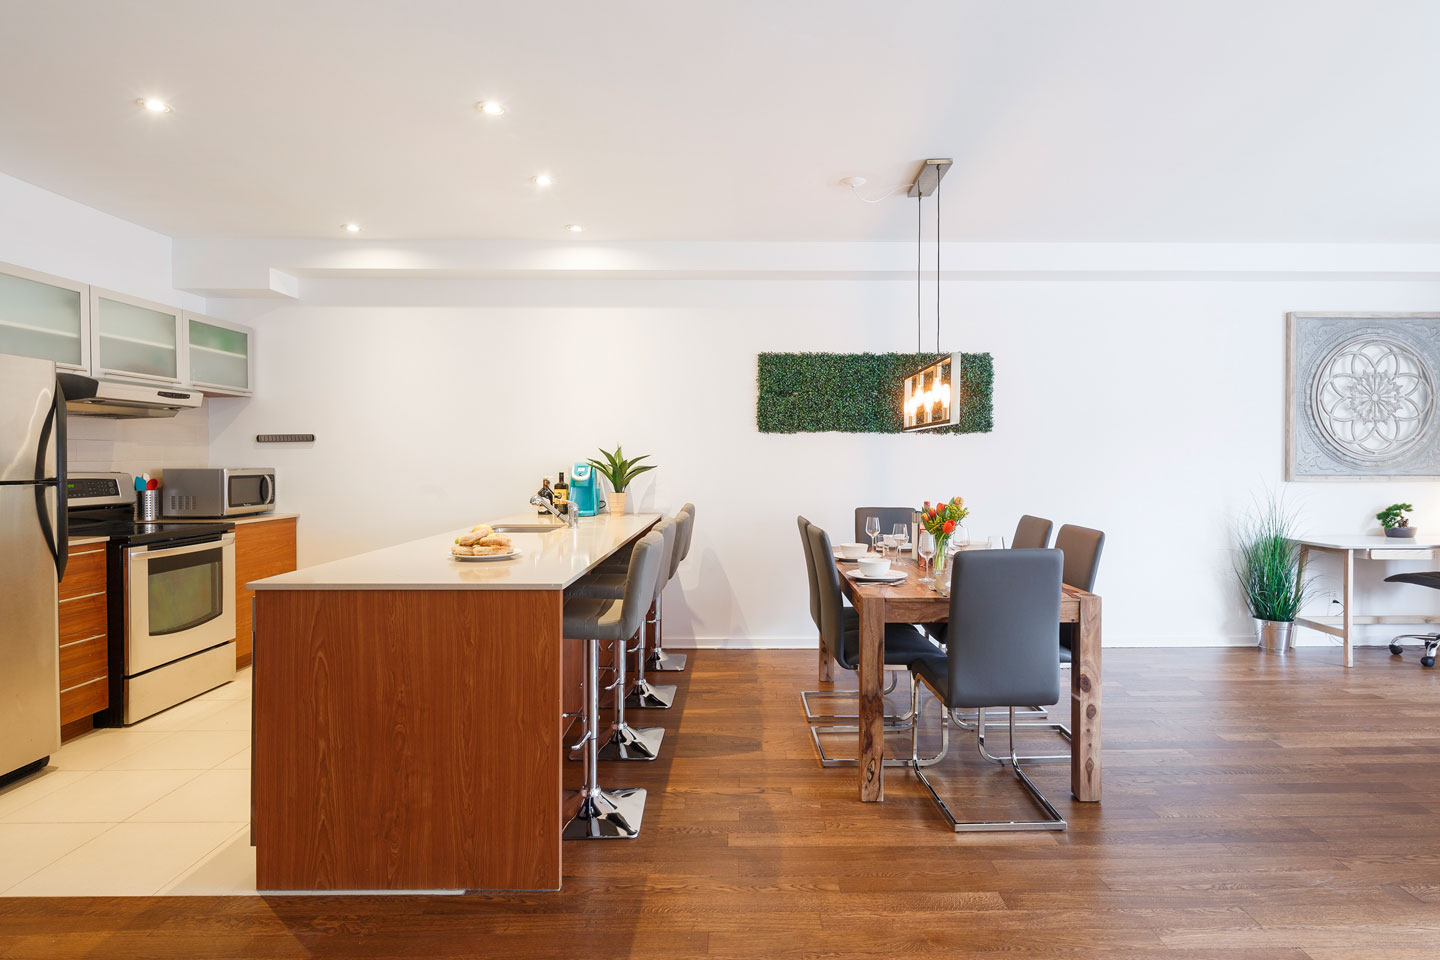 Suite 103: fully equipped kitchen and dining area